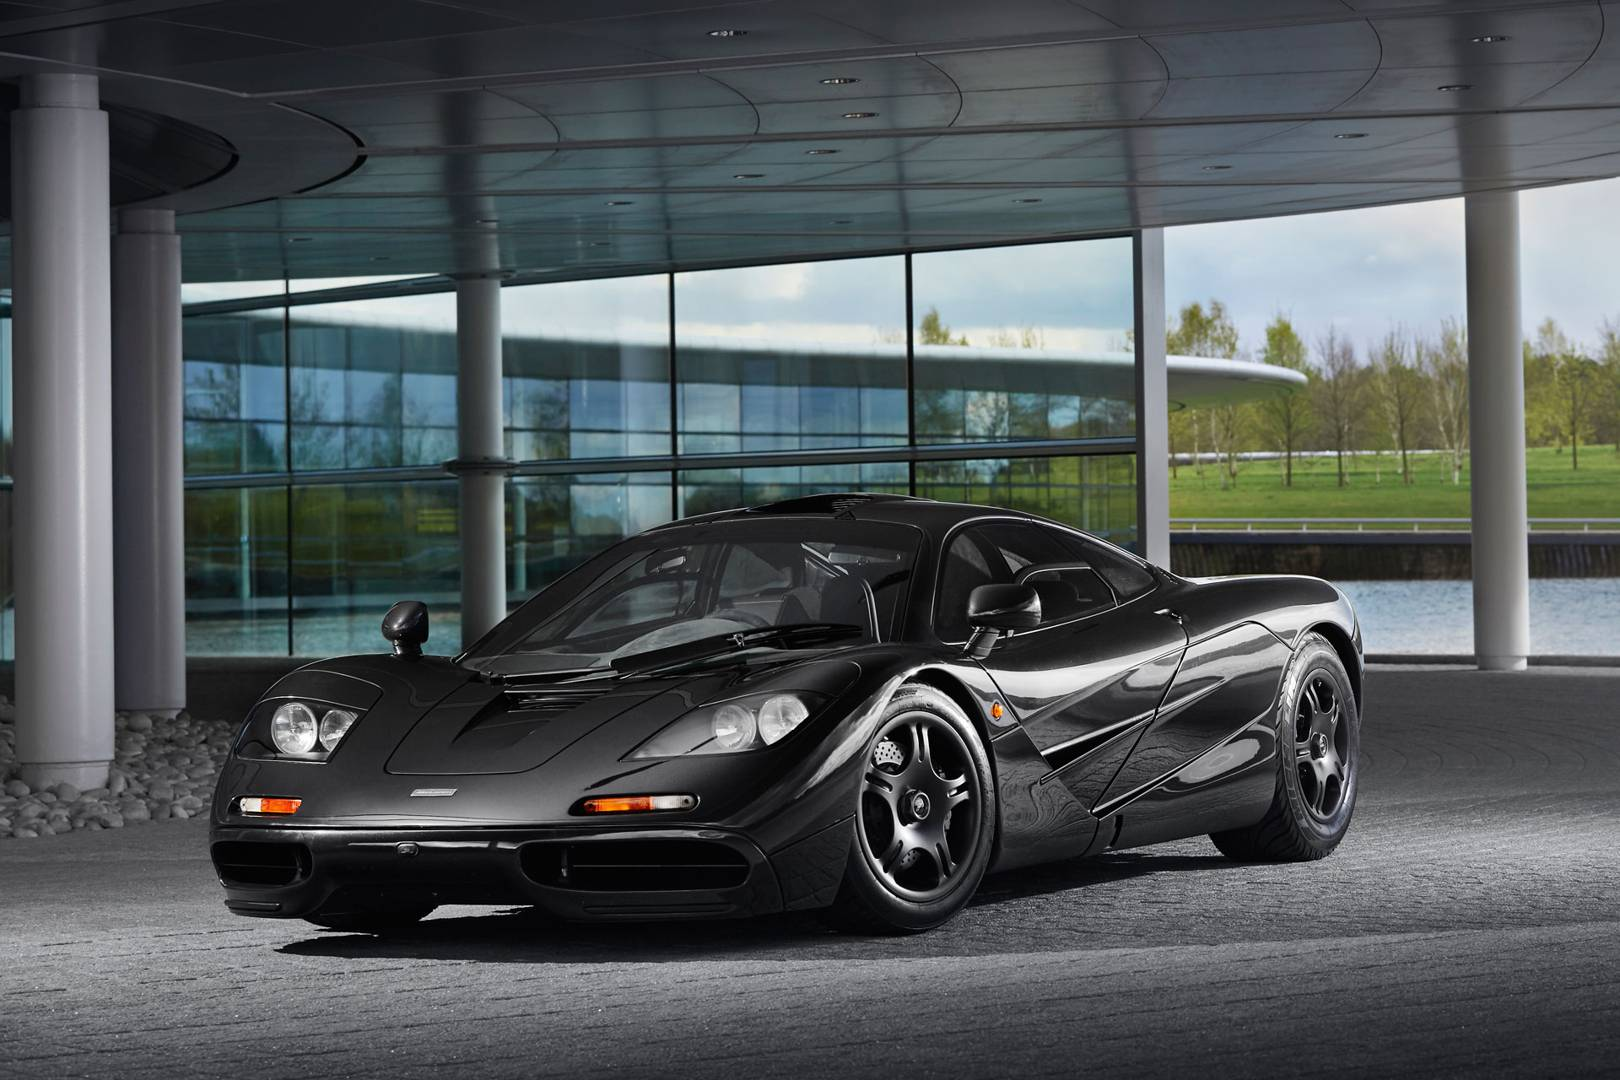 Coolest cars ever: these are the most GQ vehicles ever built ...